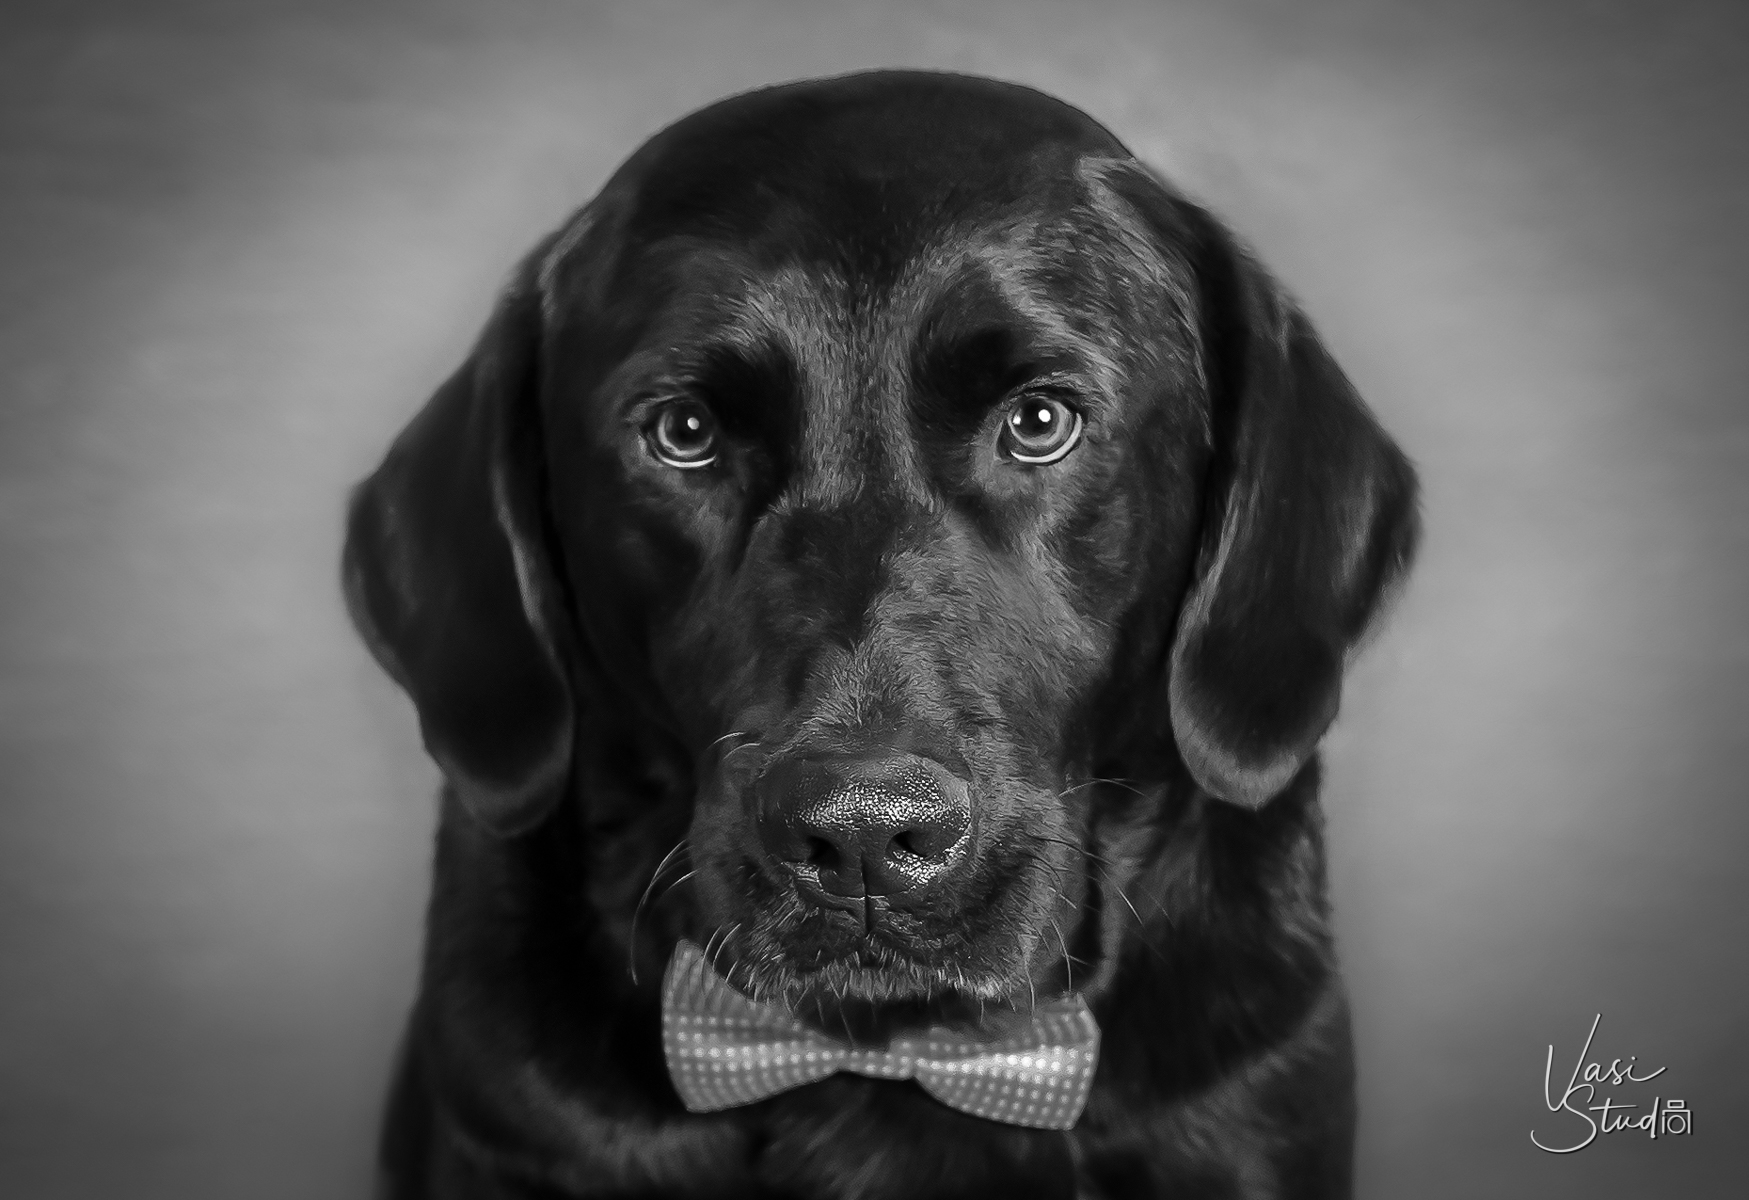 Our portraits capture the unique personalities of your dogs and cats.